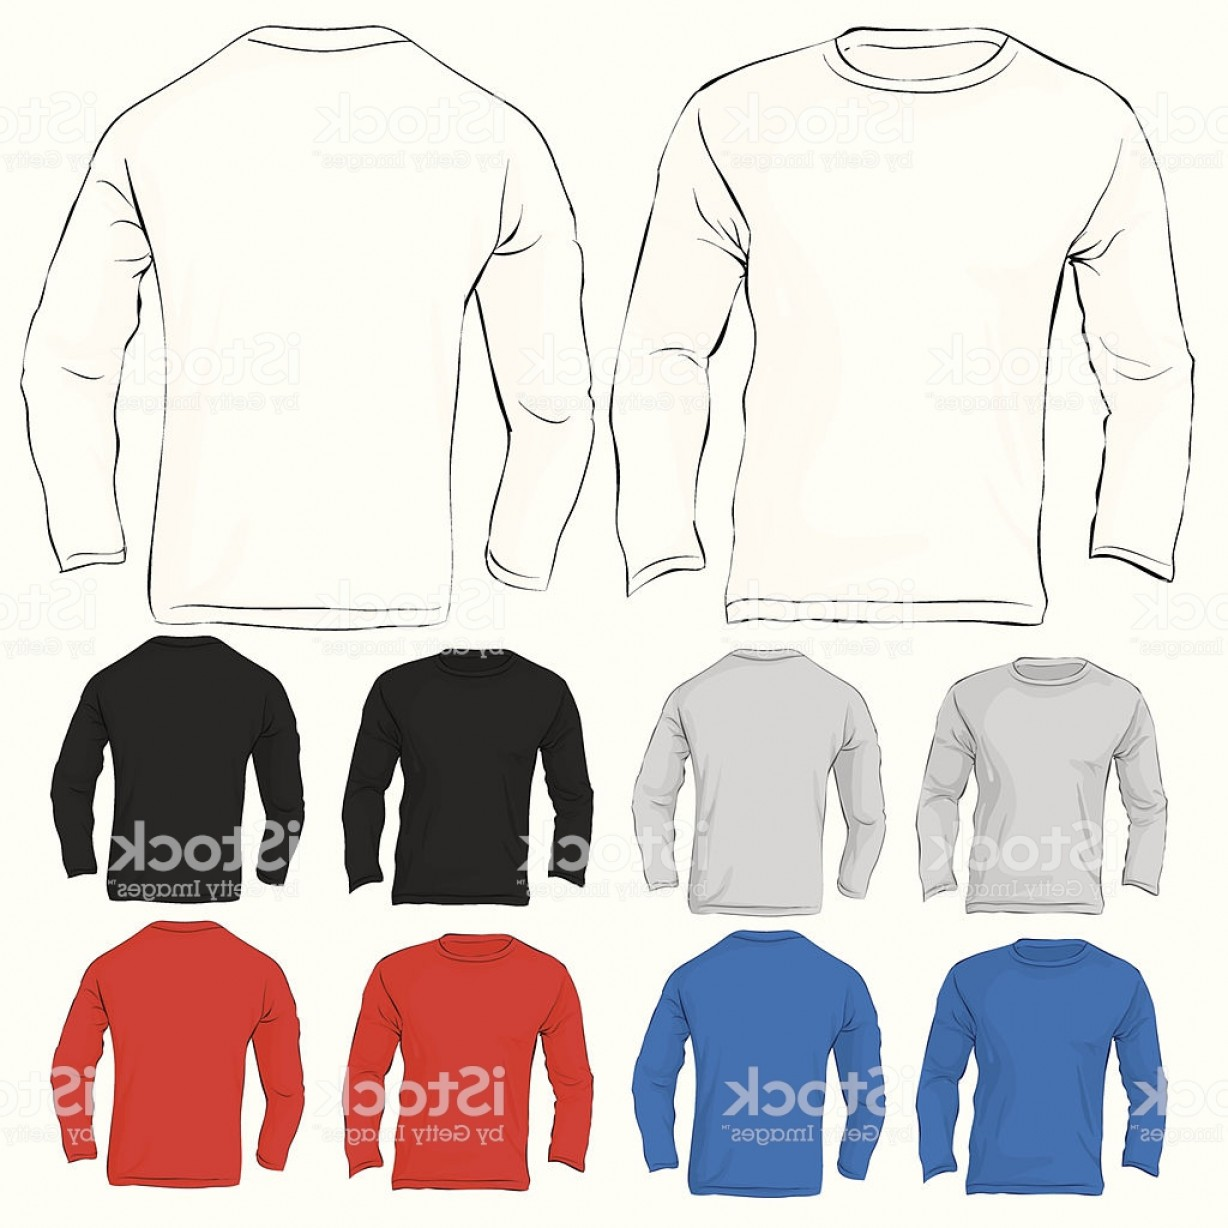 Long Sleeve Jersey Vector Template: Mens Long Sleeved T Shirt Template In Many Color Gm